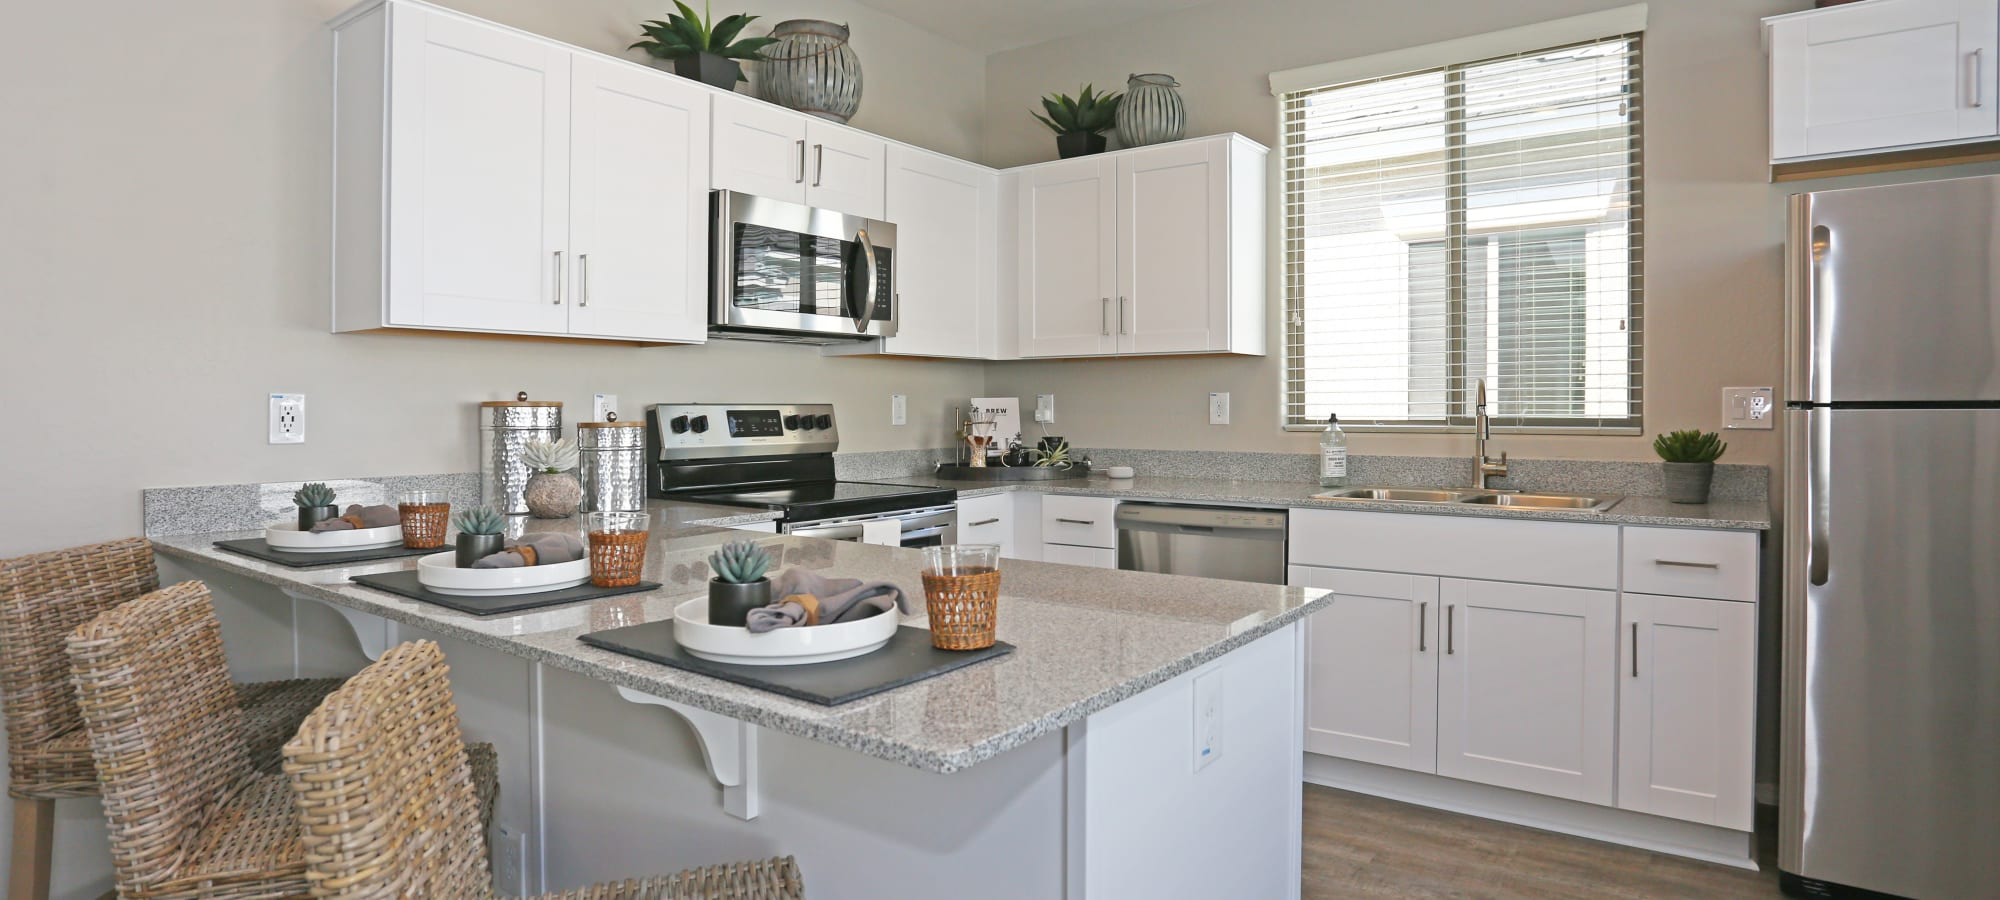 Granite countertops in model home's kitchen at Christopher Todd Communities on Mountain View in Surprise, Arizona